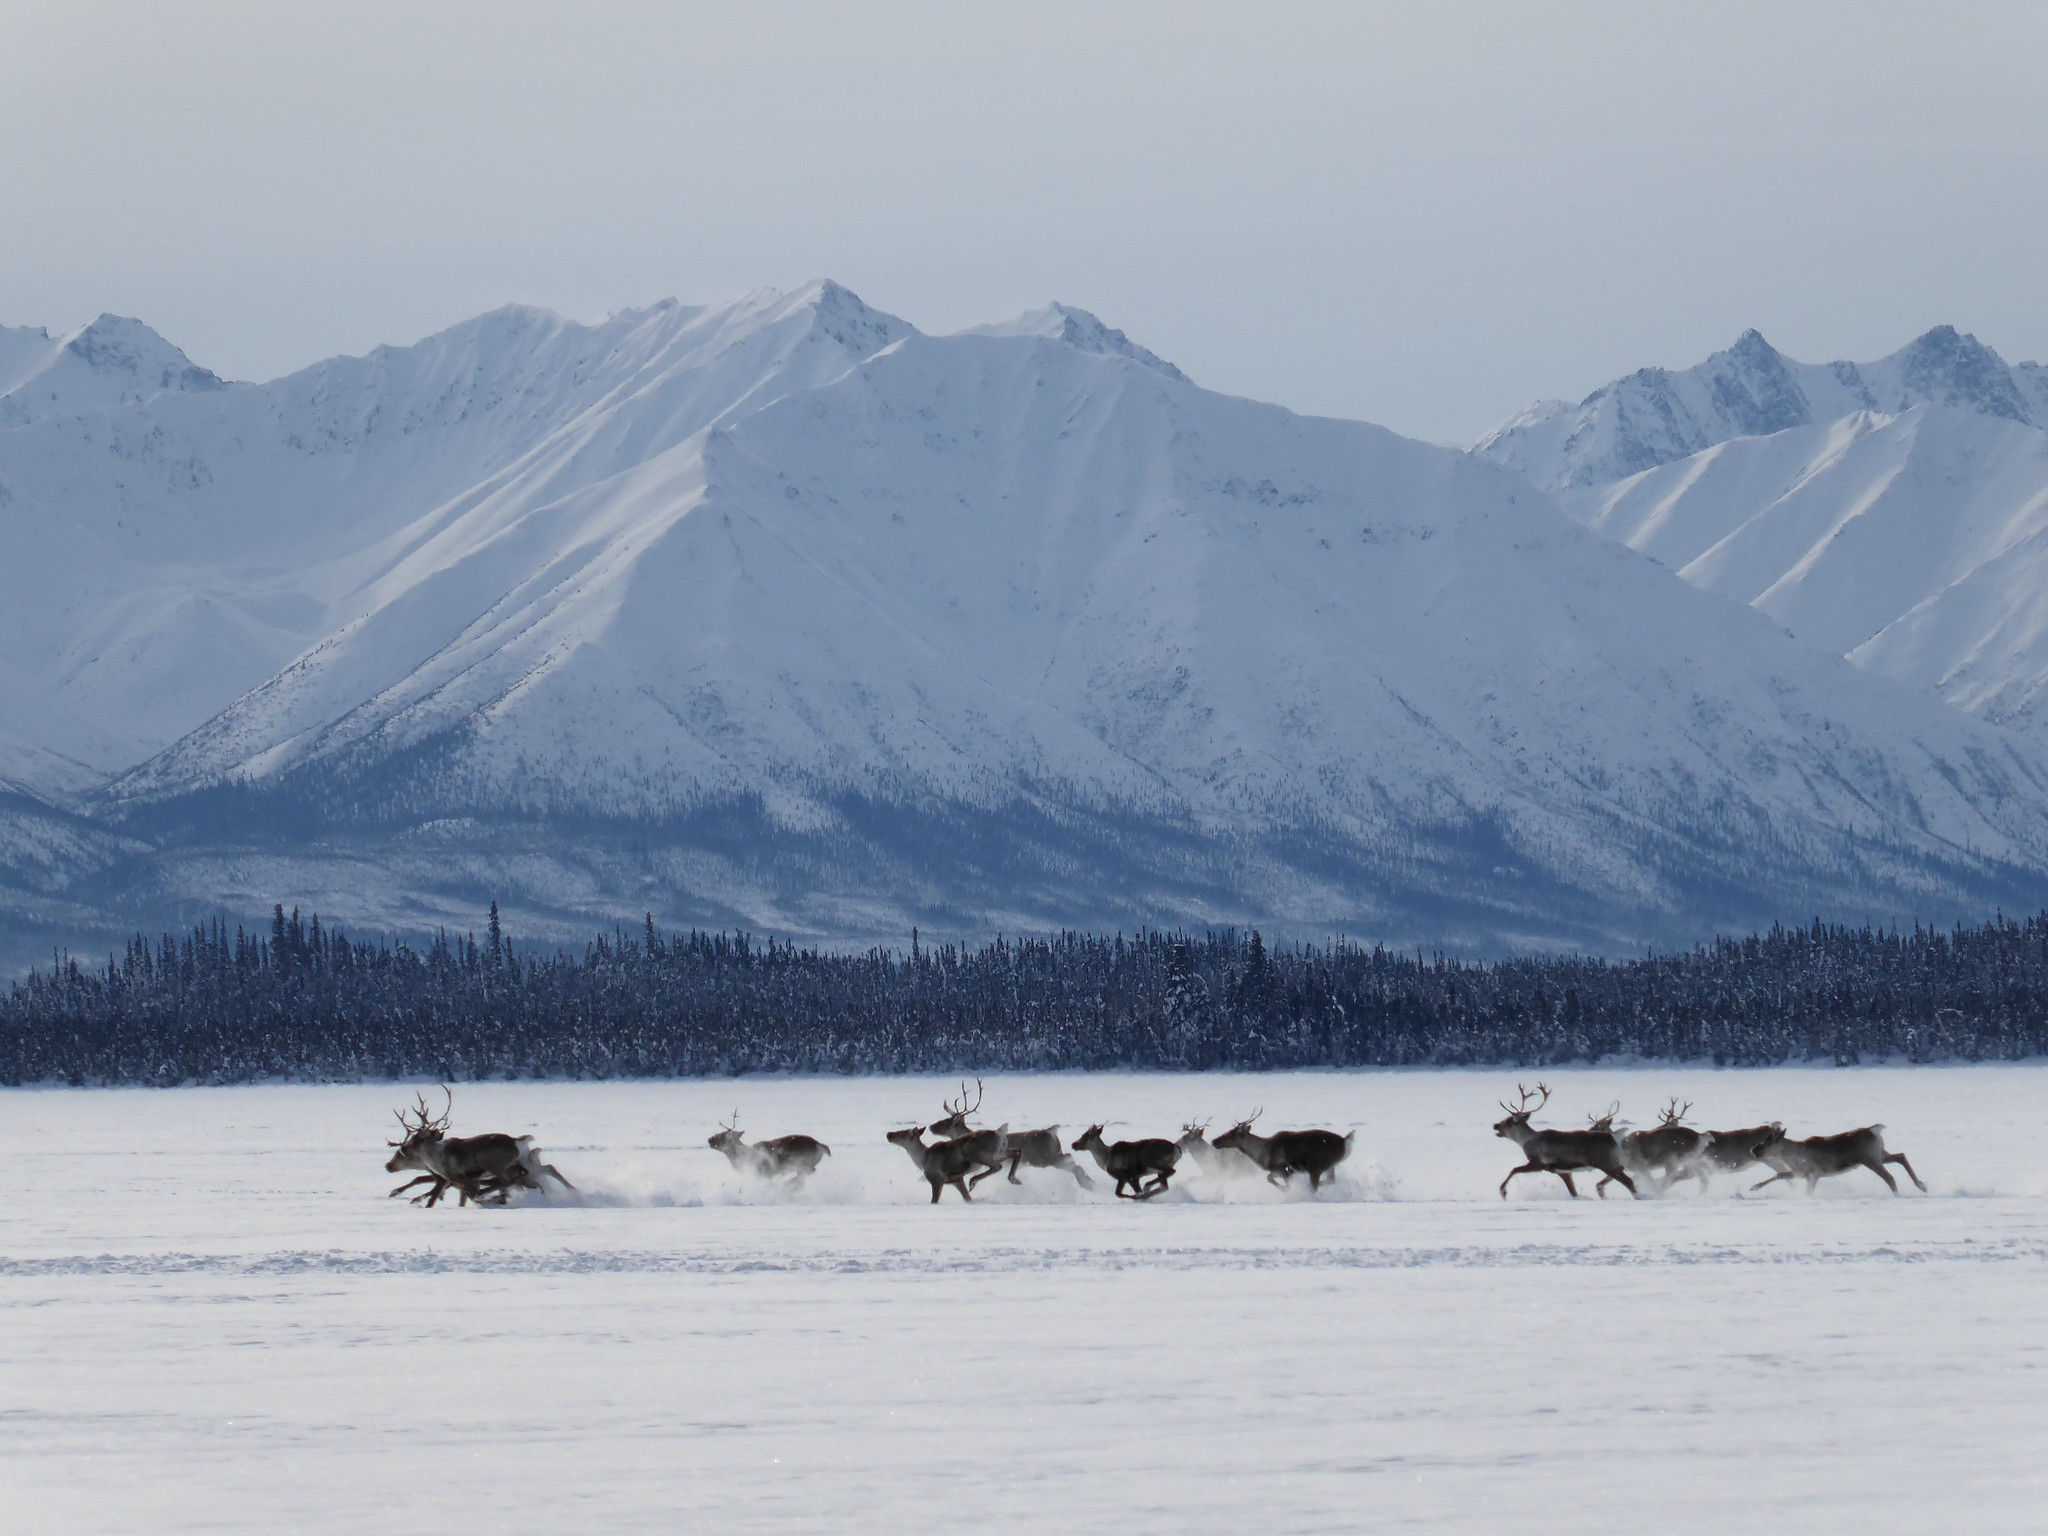 herd of caribou running on snowy landscape with mountains in background